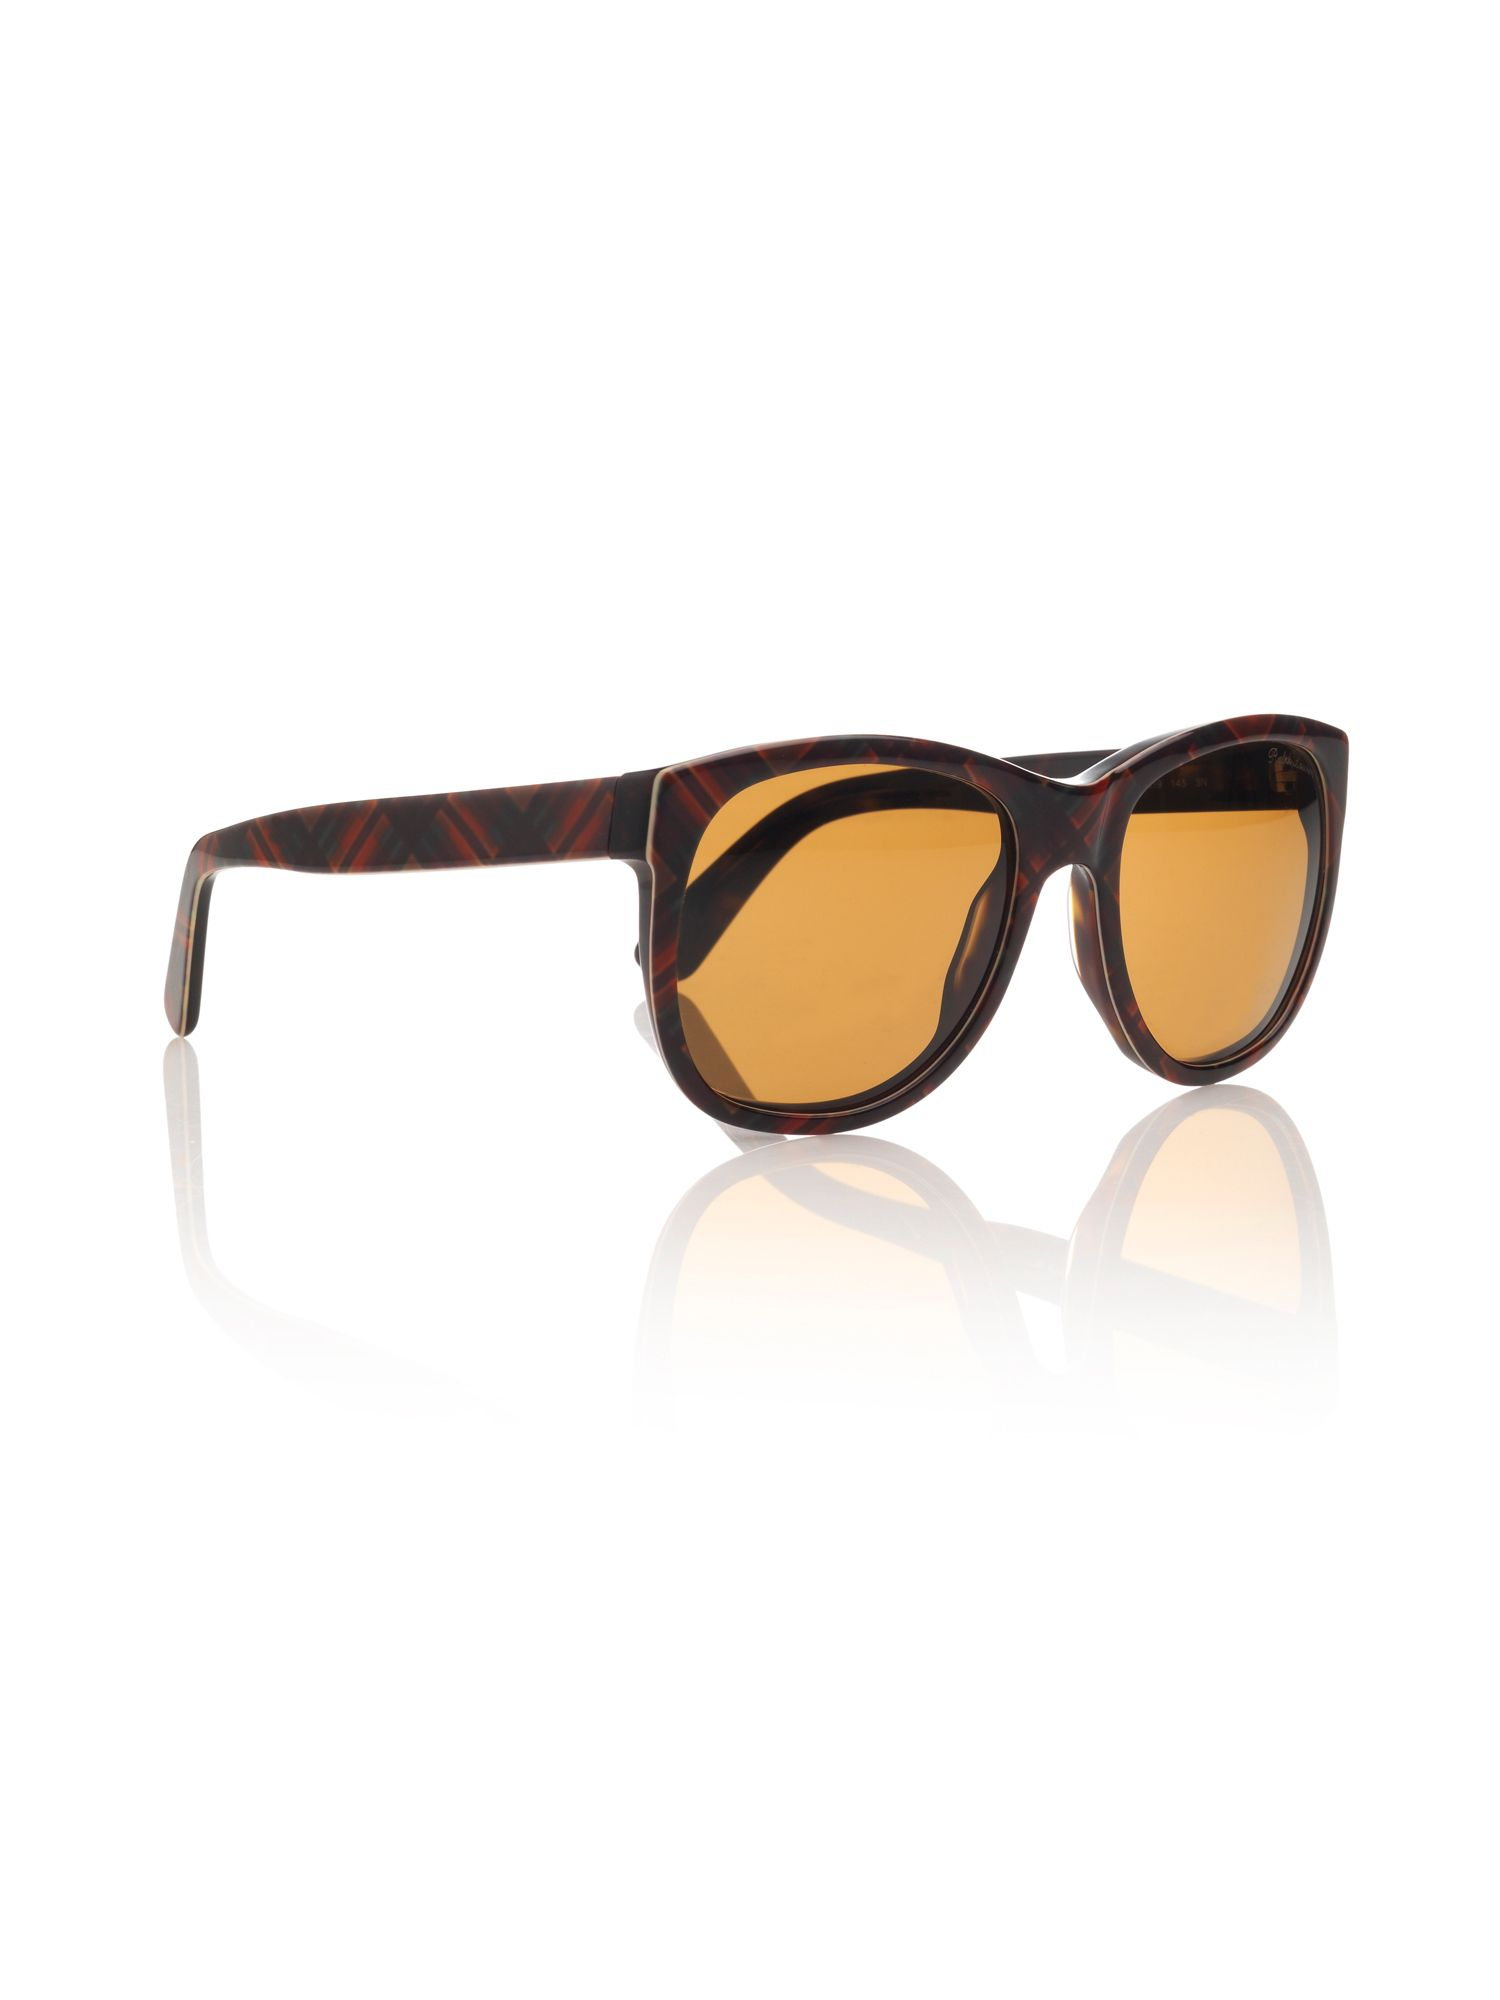 Ladies square sunglasses